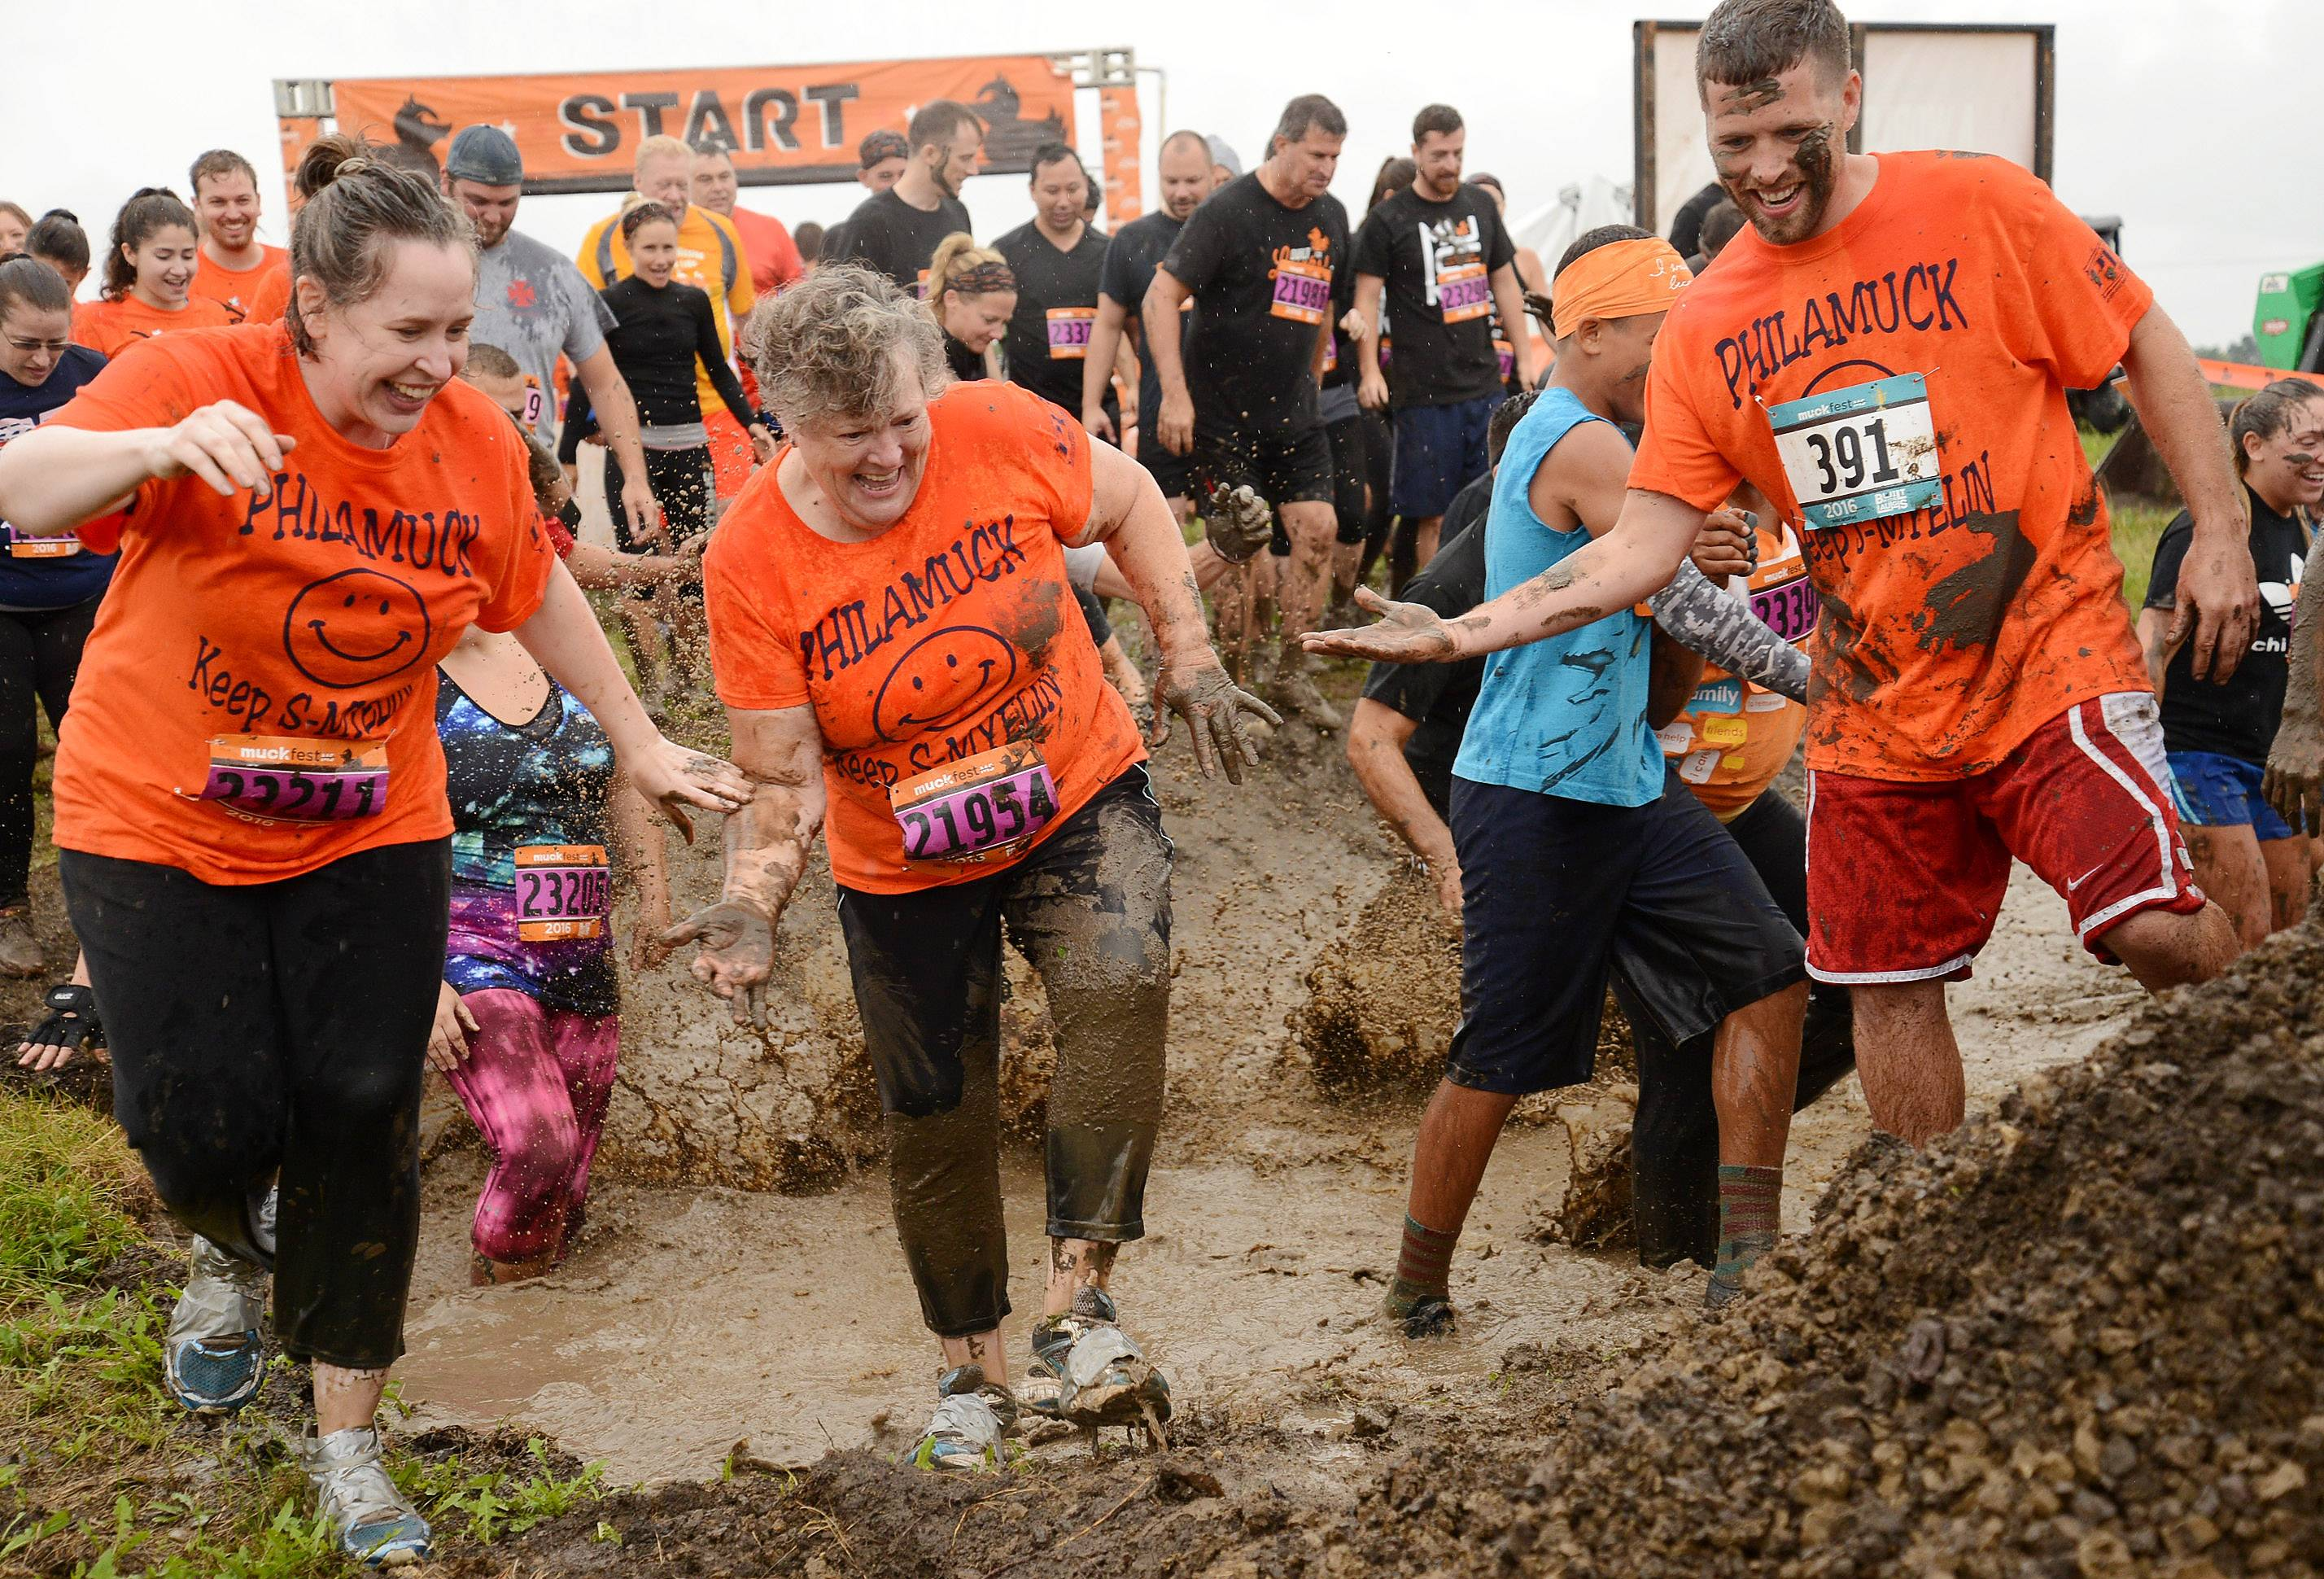 Rosemary Karner of McHenry, center, gets help navigating the mud course during Muckfest MS at the Lake County Fairgrounds.